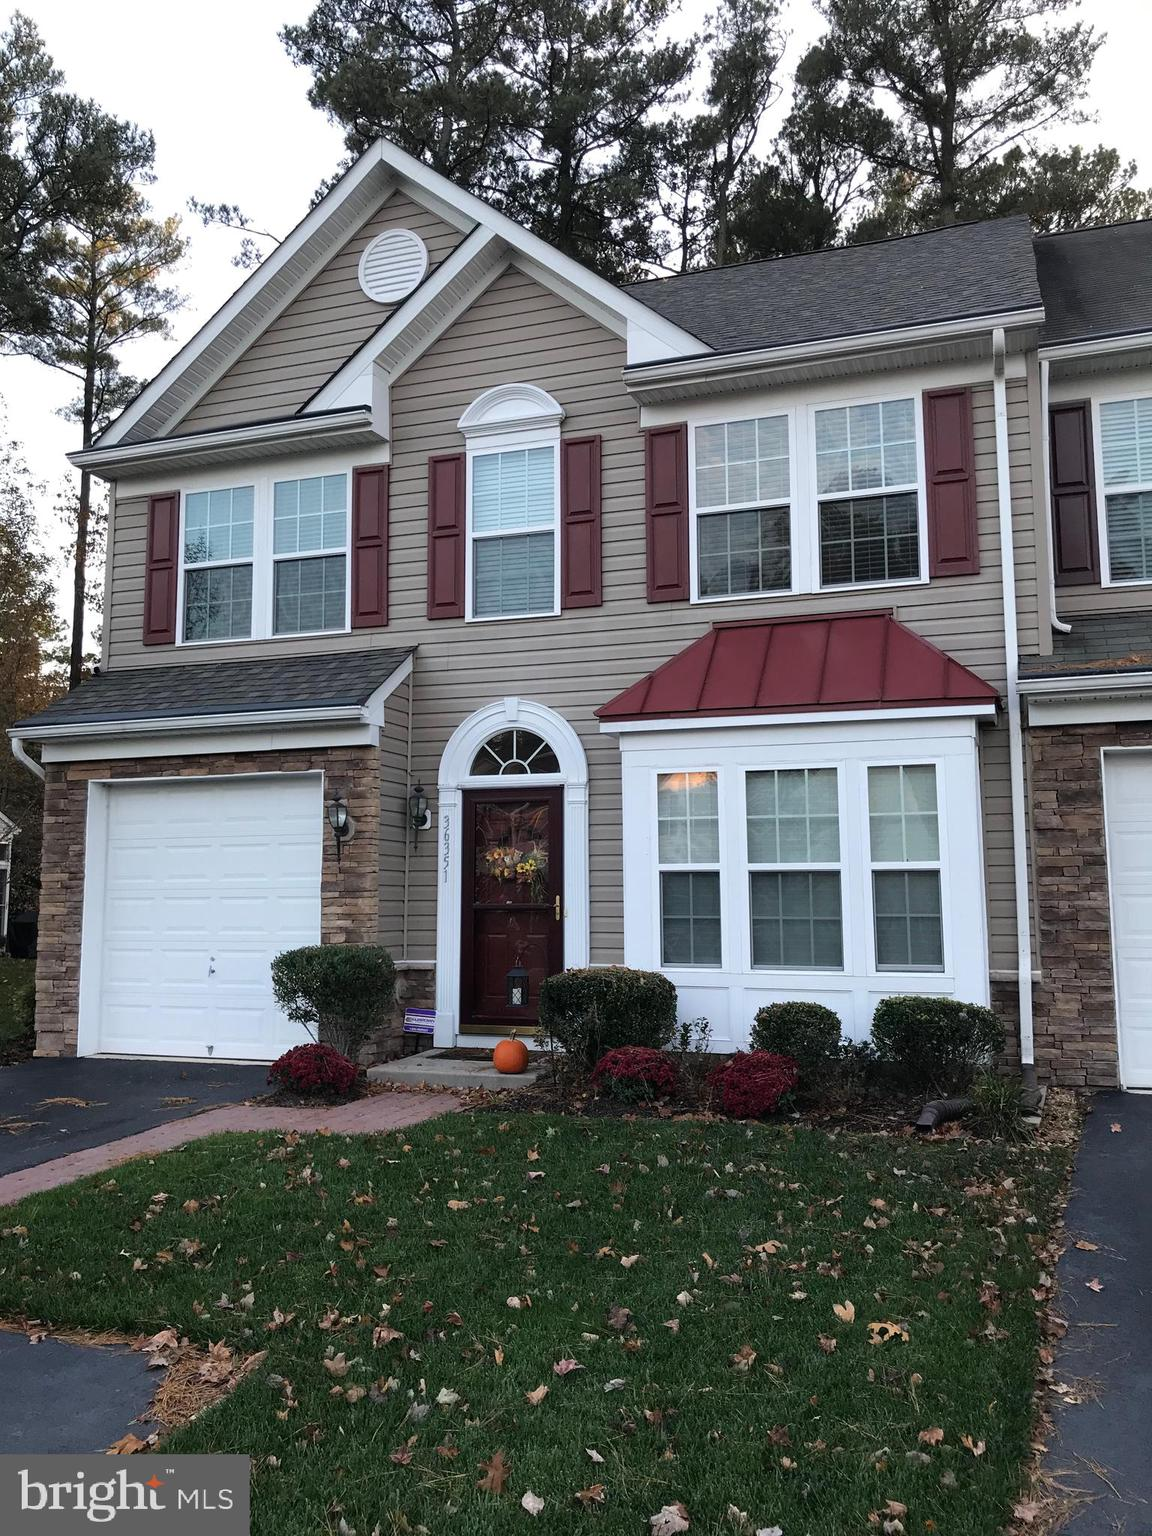 Beautifully cared for end unit townhome in the established community of Windhurst Manor. Spacious op